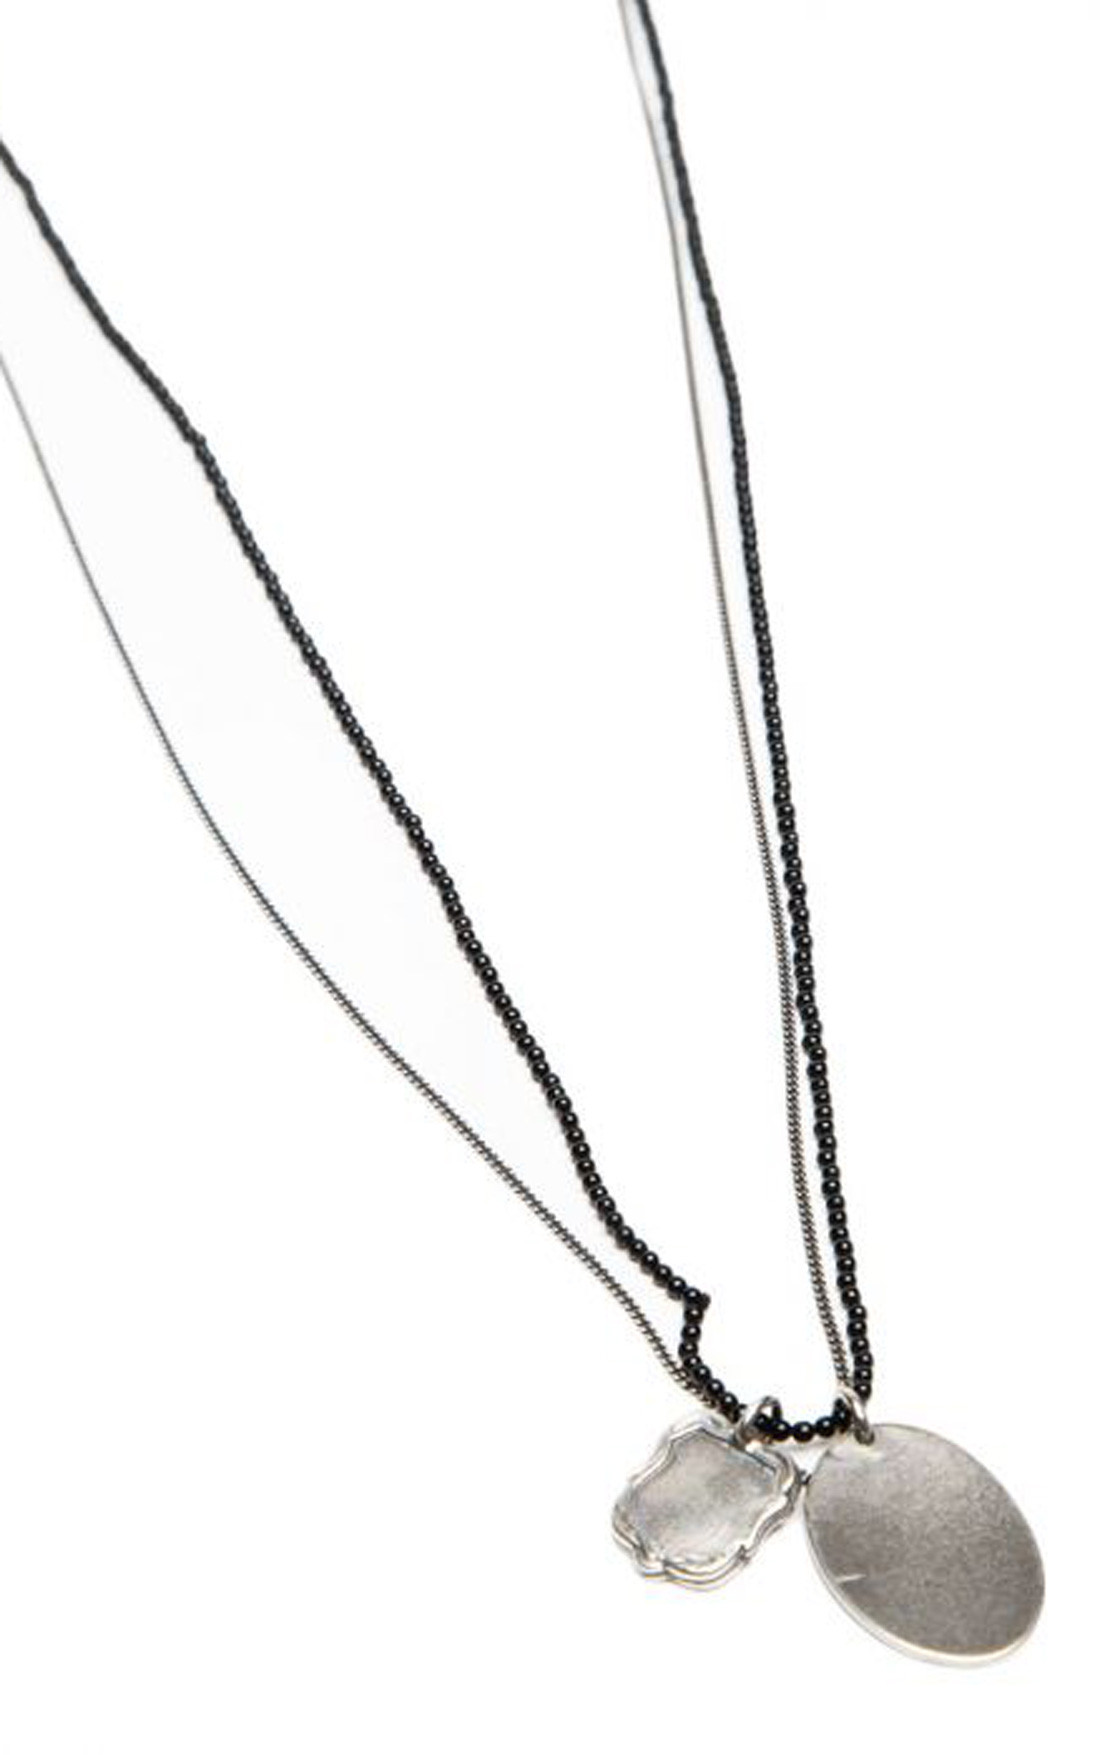 Goti - Sterling Silver and Onyx Necklace (CN1115)